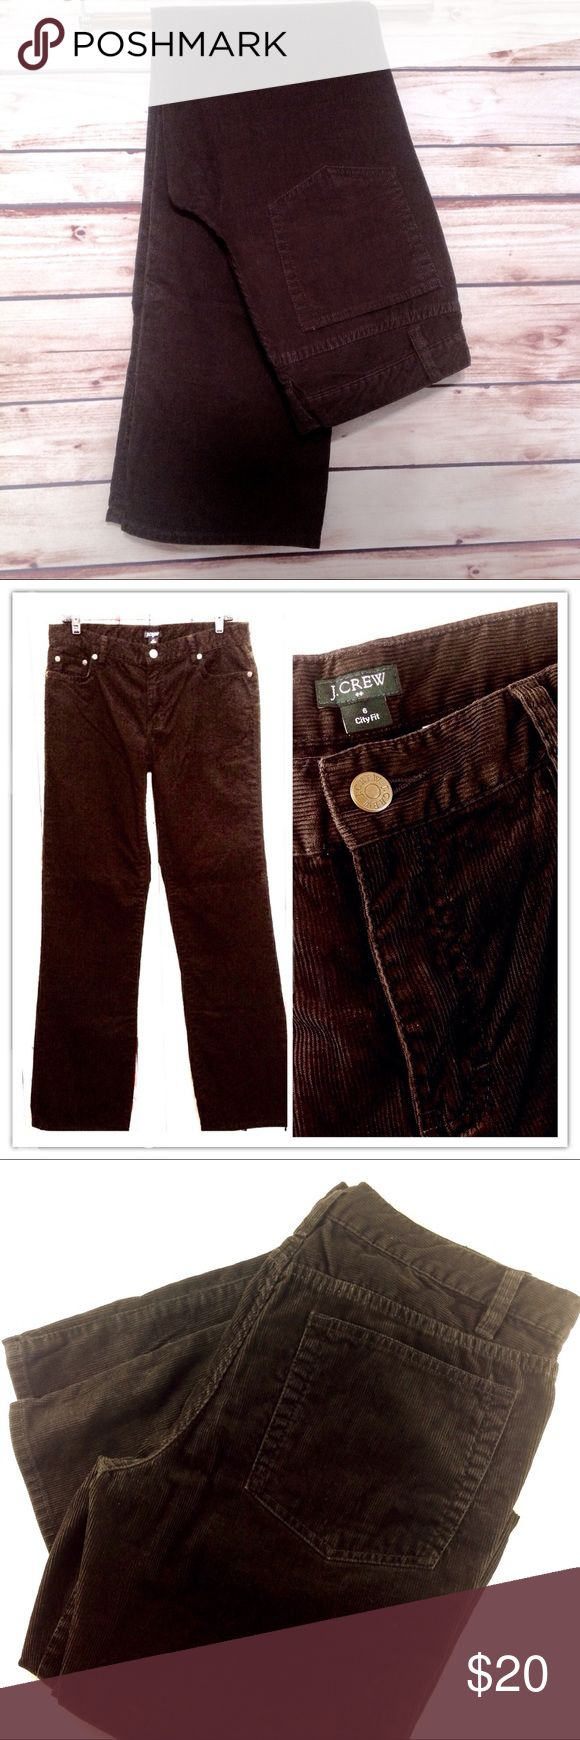 """J. Crew City Fit Brown Micro Cord Pant Size 6 EUC Excellent condition! J. Crew very dark coffee brown micro cords. Size 6. City Fit. Straight leg. Waist 31"""", Inseam 32"""". 100% Cotton.                                                    🔹Please ask all your questions before you purchase! I am happy to help! 🔹Sorry, no trades or holds. 💕Happy Poshing! J. Crew Pants Straight Leg"""